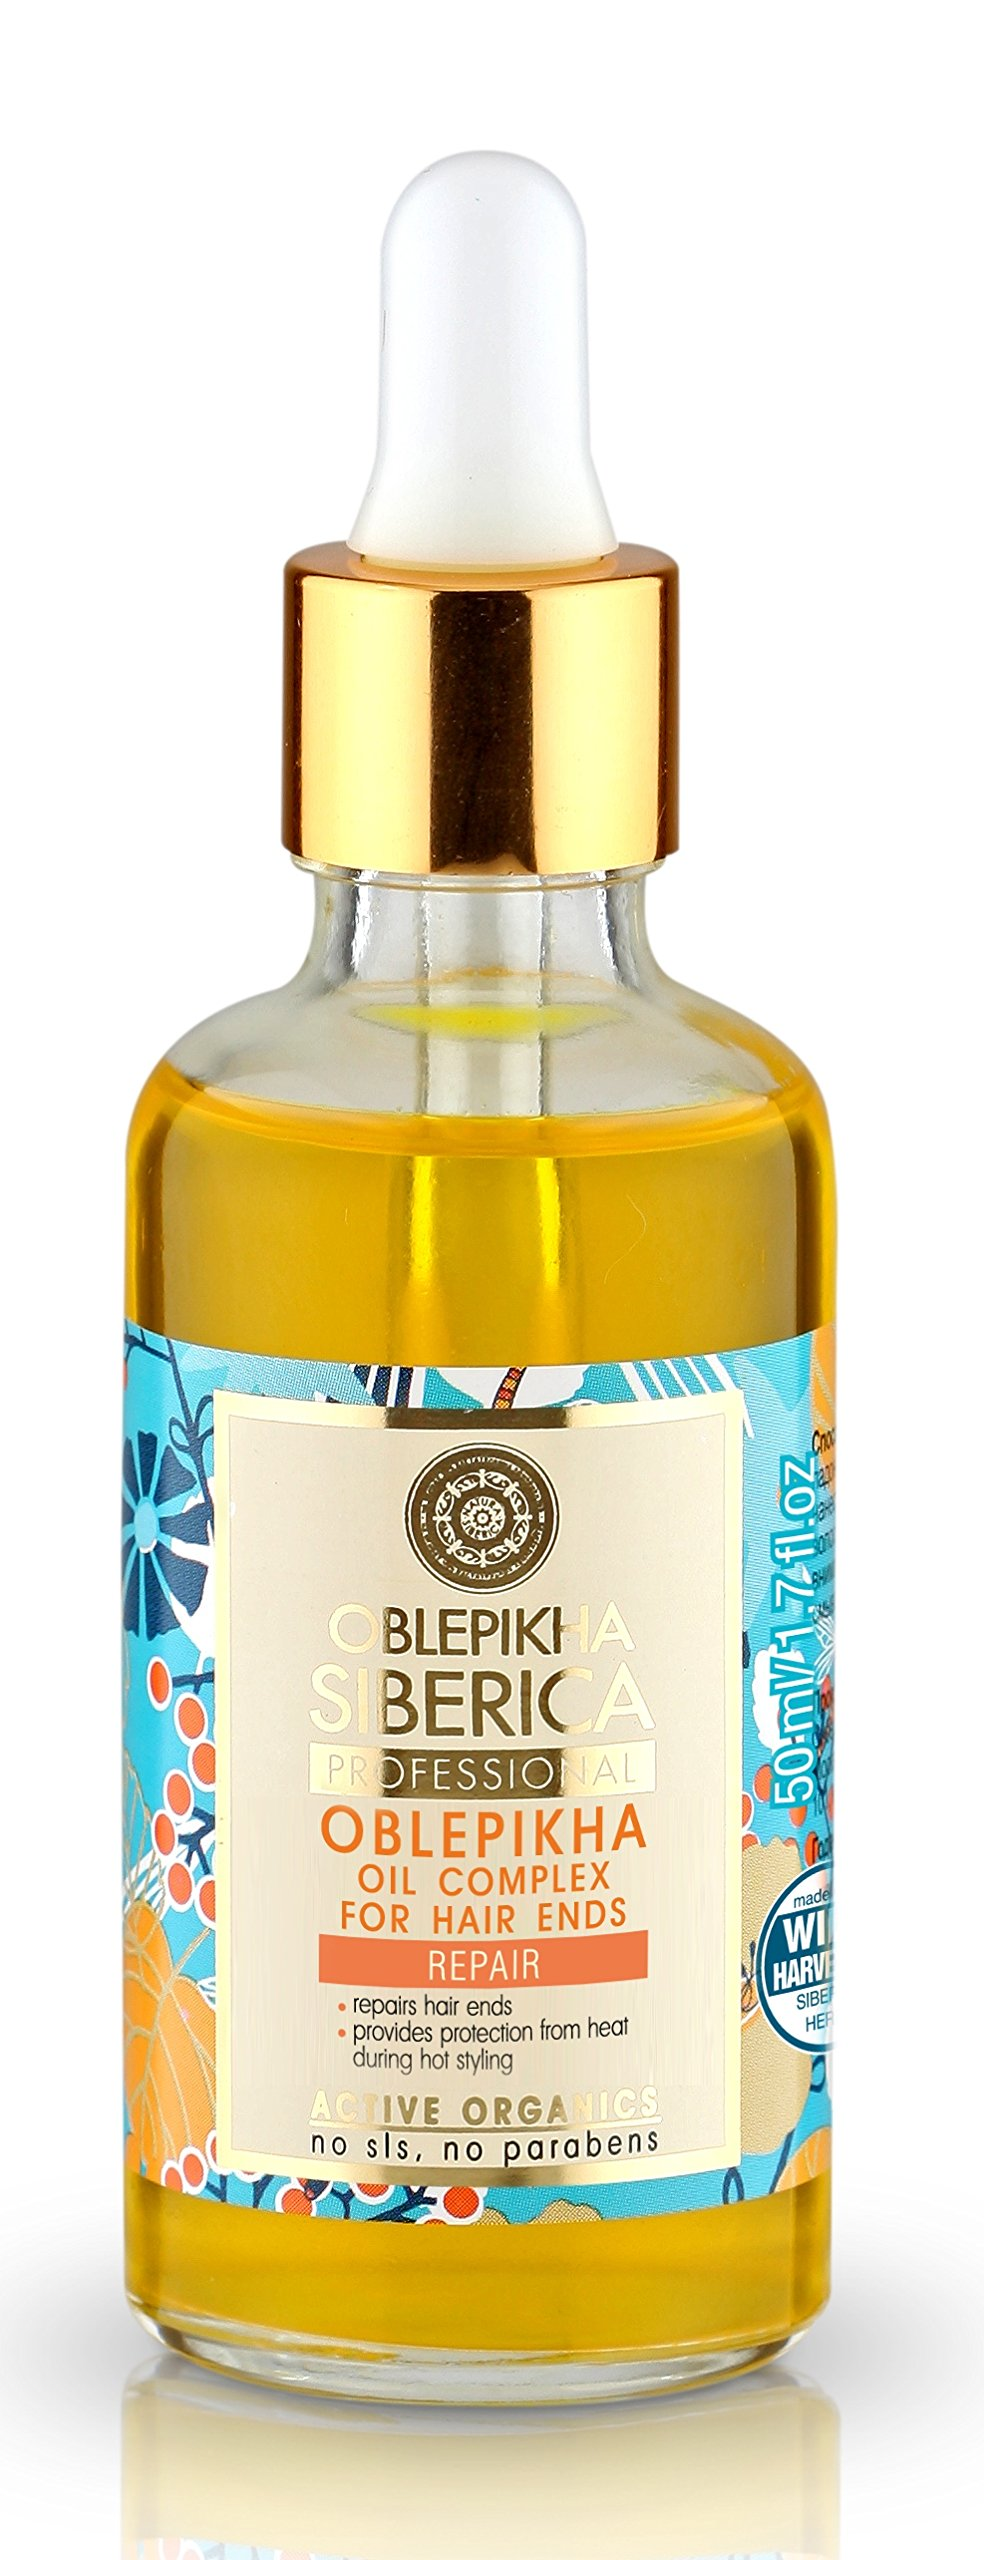 Active Organic Sea Buckthorn Oil for Hair Tips 50 Ml (Natura Siberica)